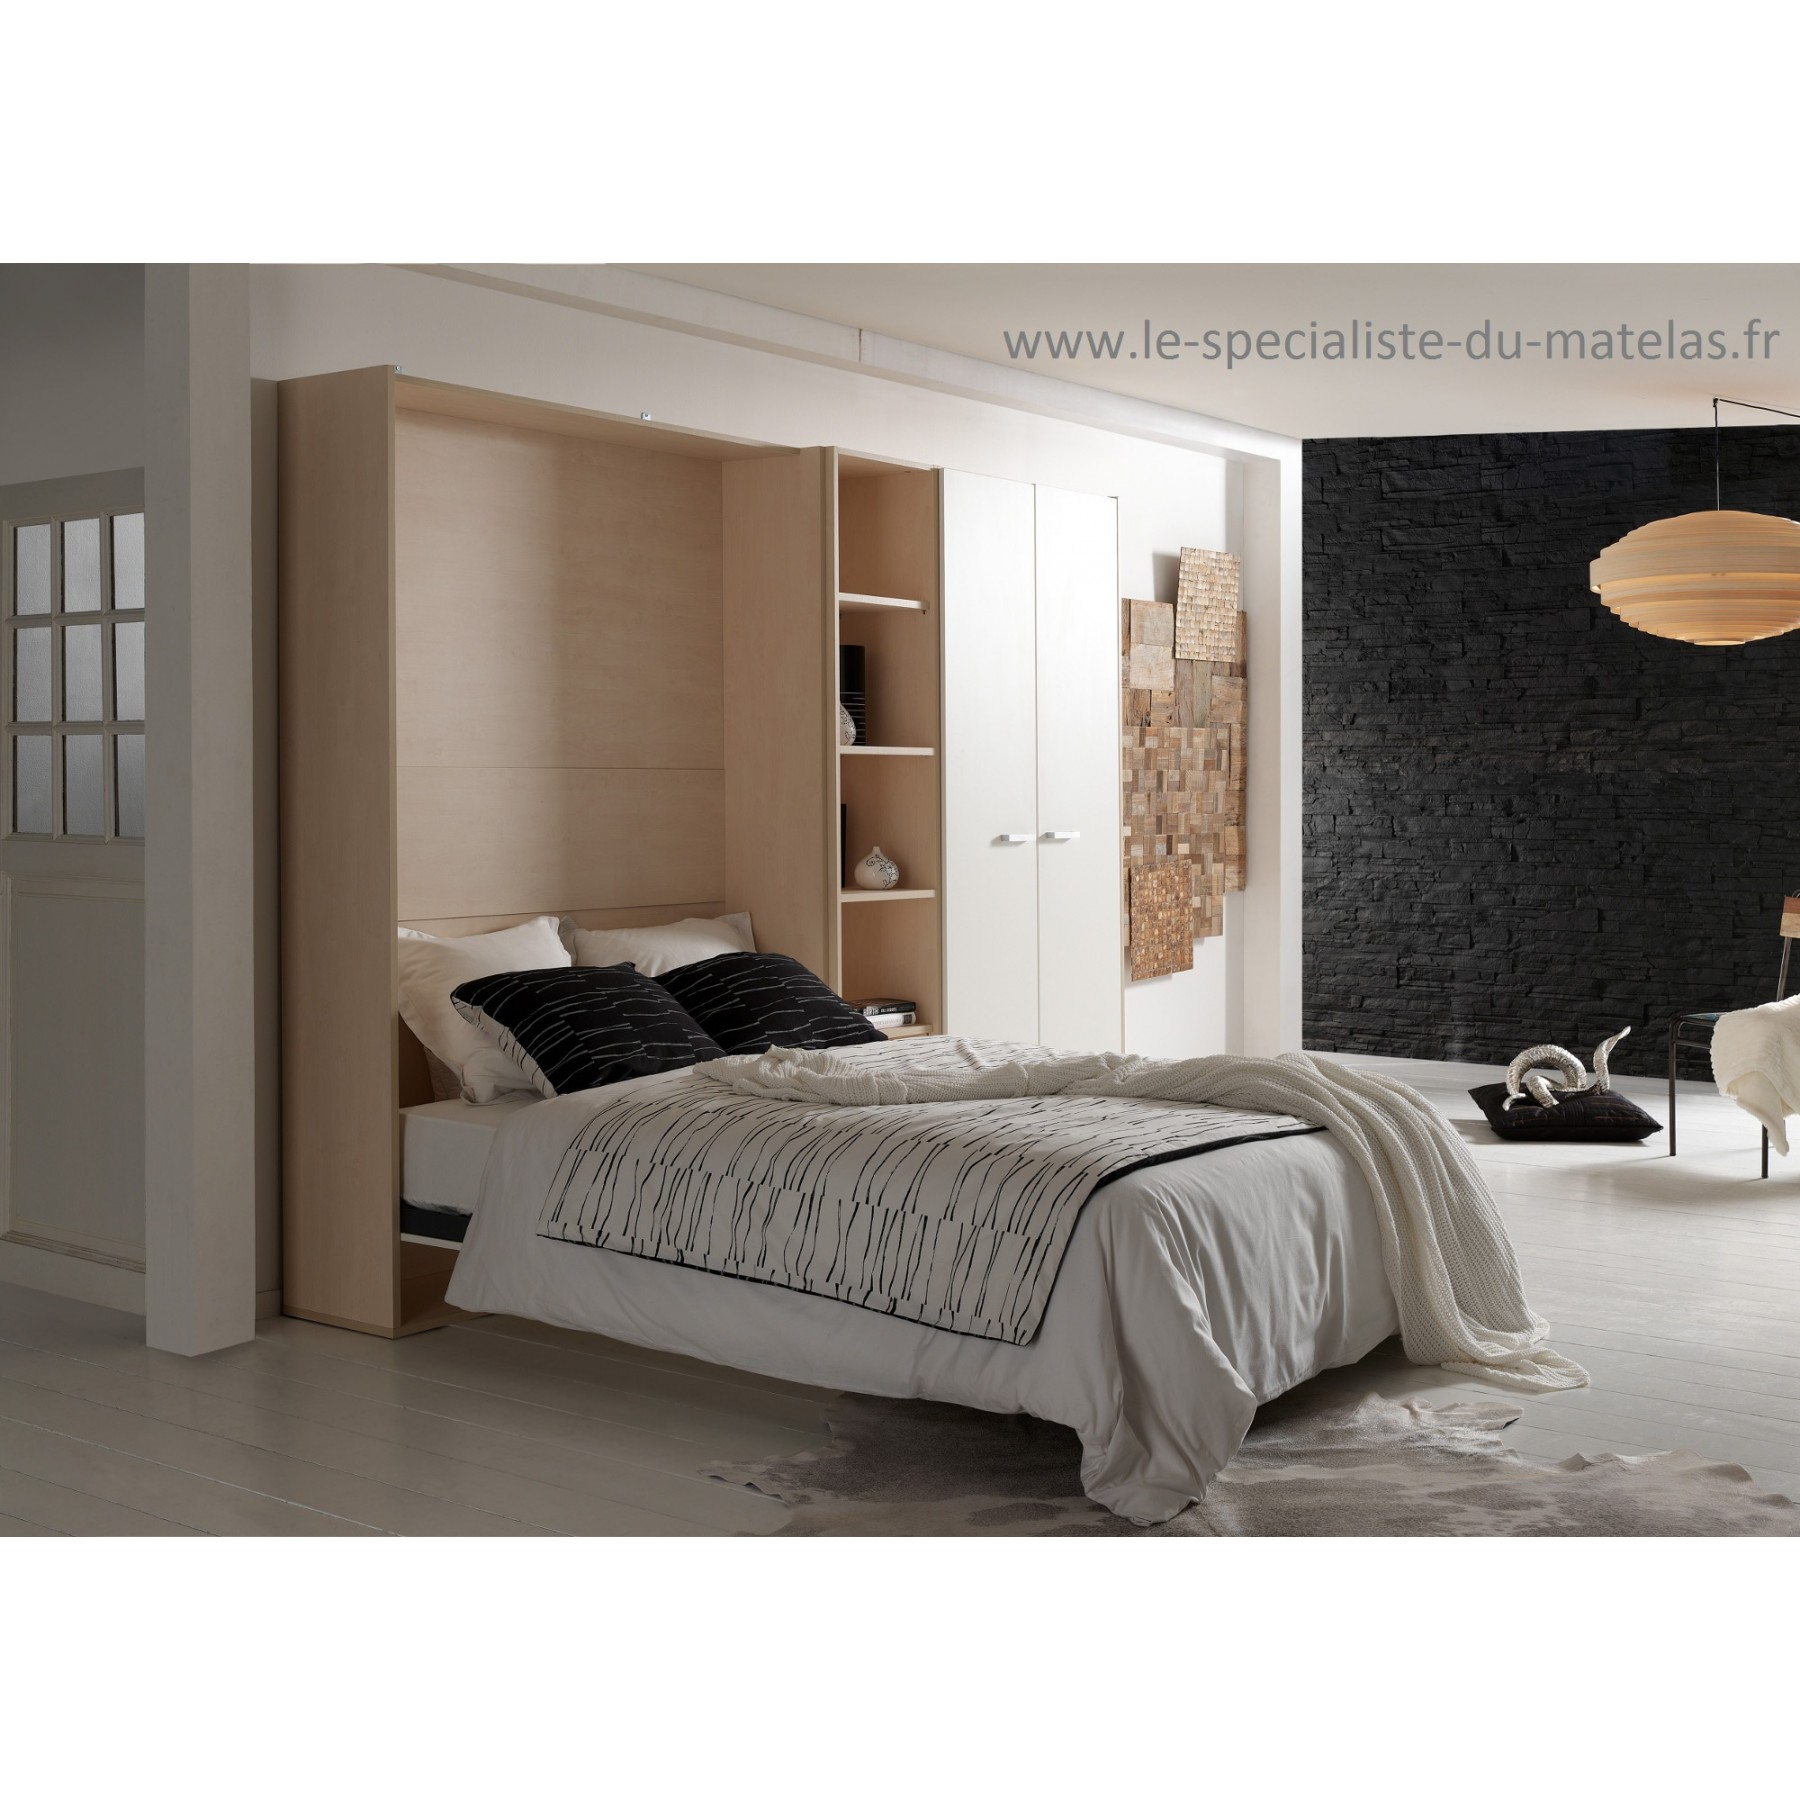 lit escamotable vertical boone mod le base selecta d couvrir au le sp cialiste du matelas. Black Bedroom Furniture Sets. Home Design Ideas